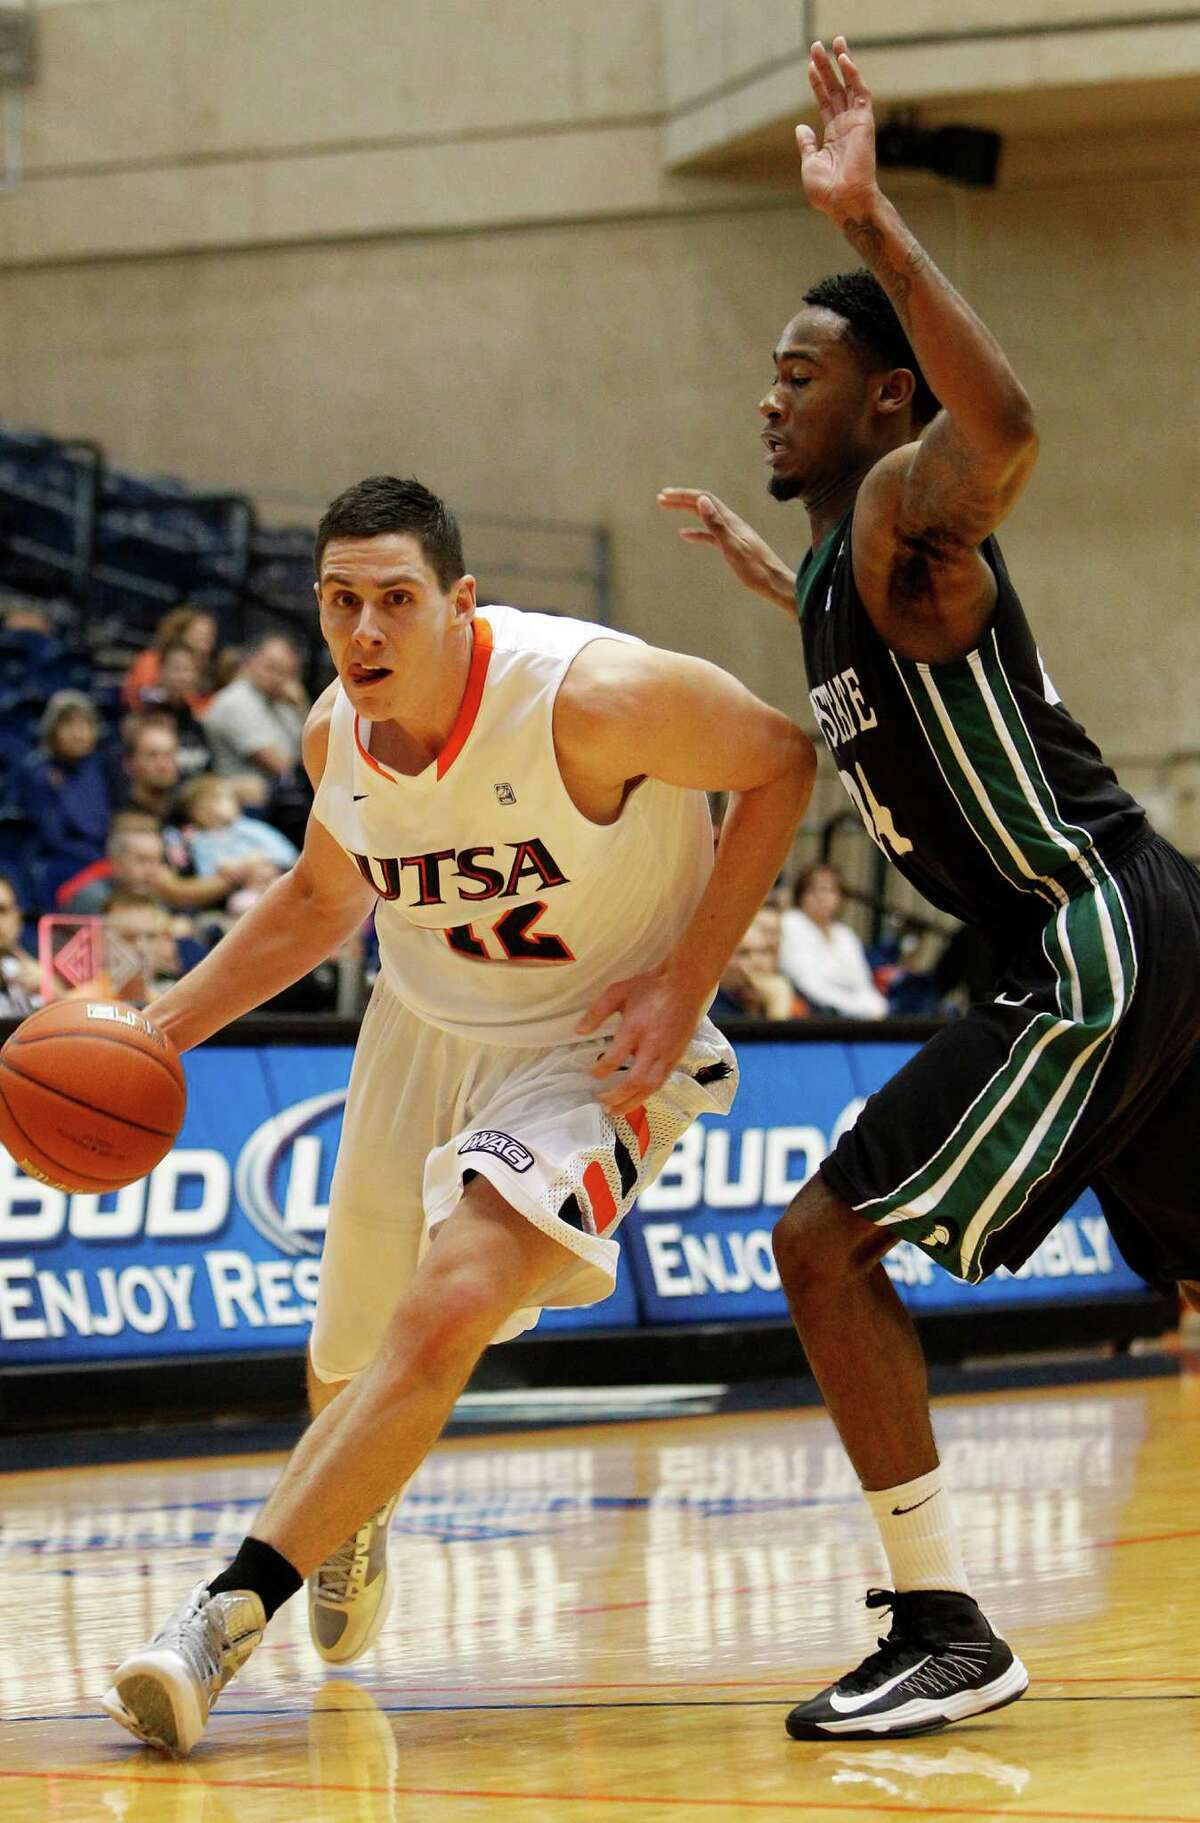 UTSA's Jeromie Hill, left, drives to the basket past the defense of South Carolina Upstate's Jodd Maxey during first half action at UTSA's Convocation Center on Saturday, Nov. 17, 2012. MICHAEL MILLER / FOR THE EXPRESS-NEWS